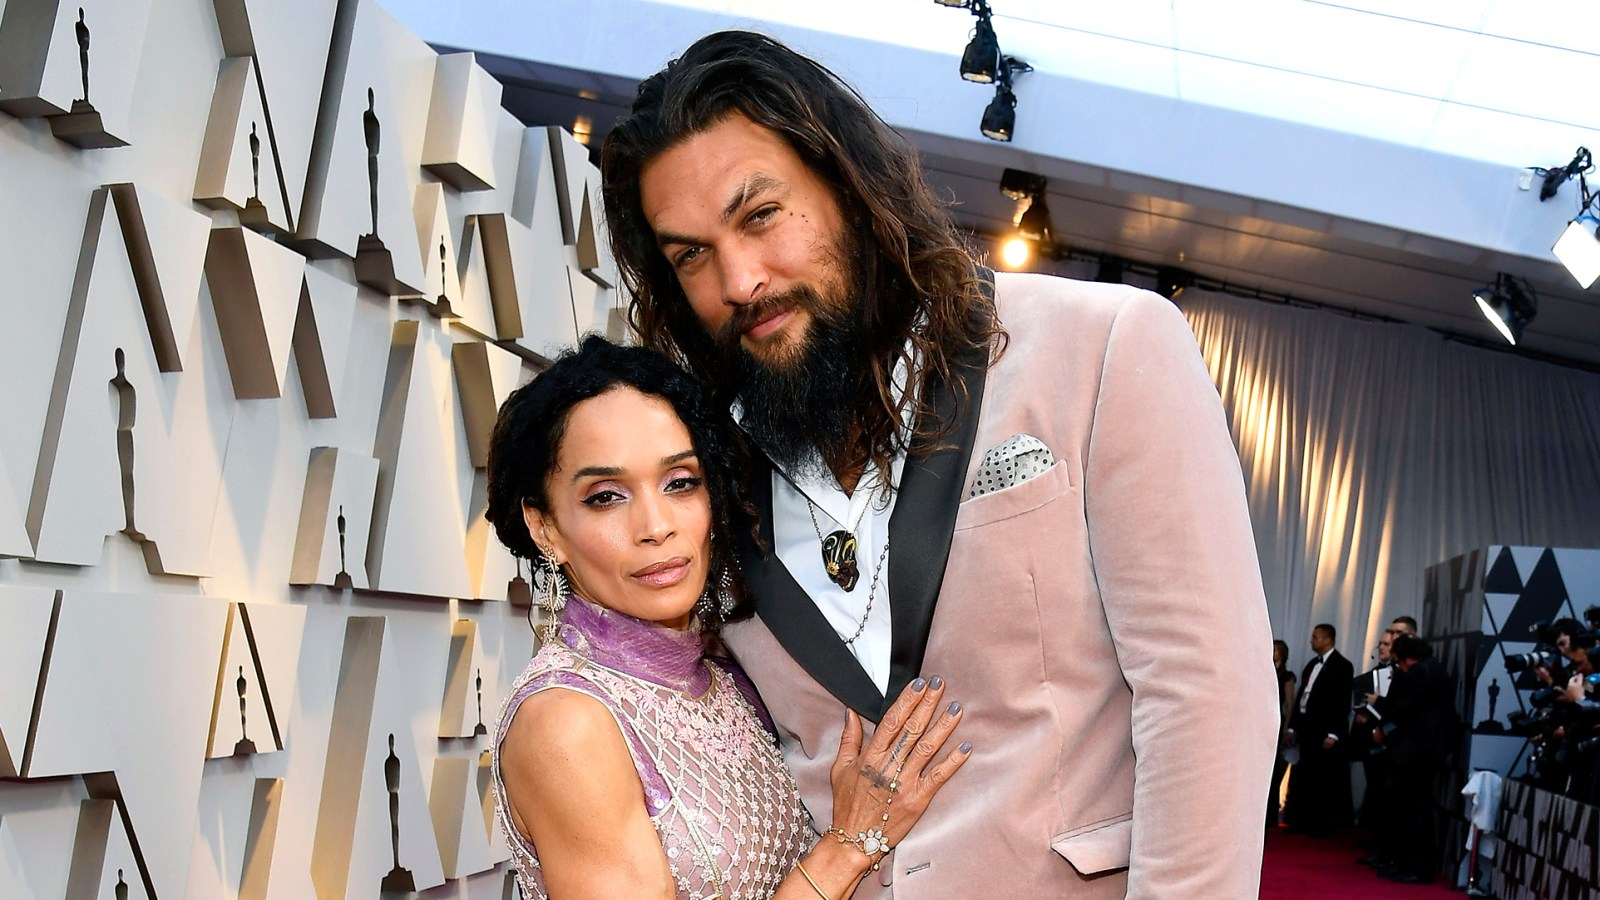 Jason Momoa Reacts To His Photo On Girl Scout Cookie Box